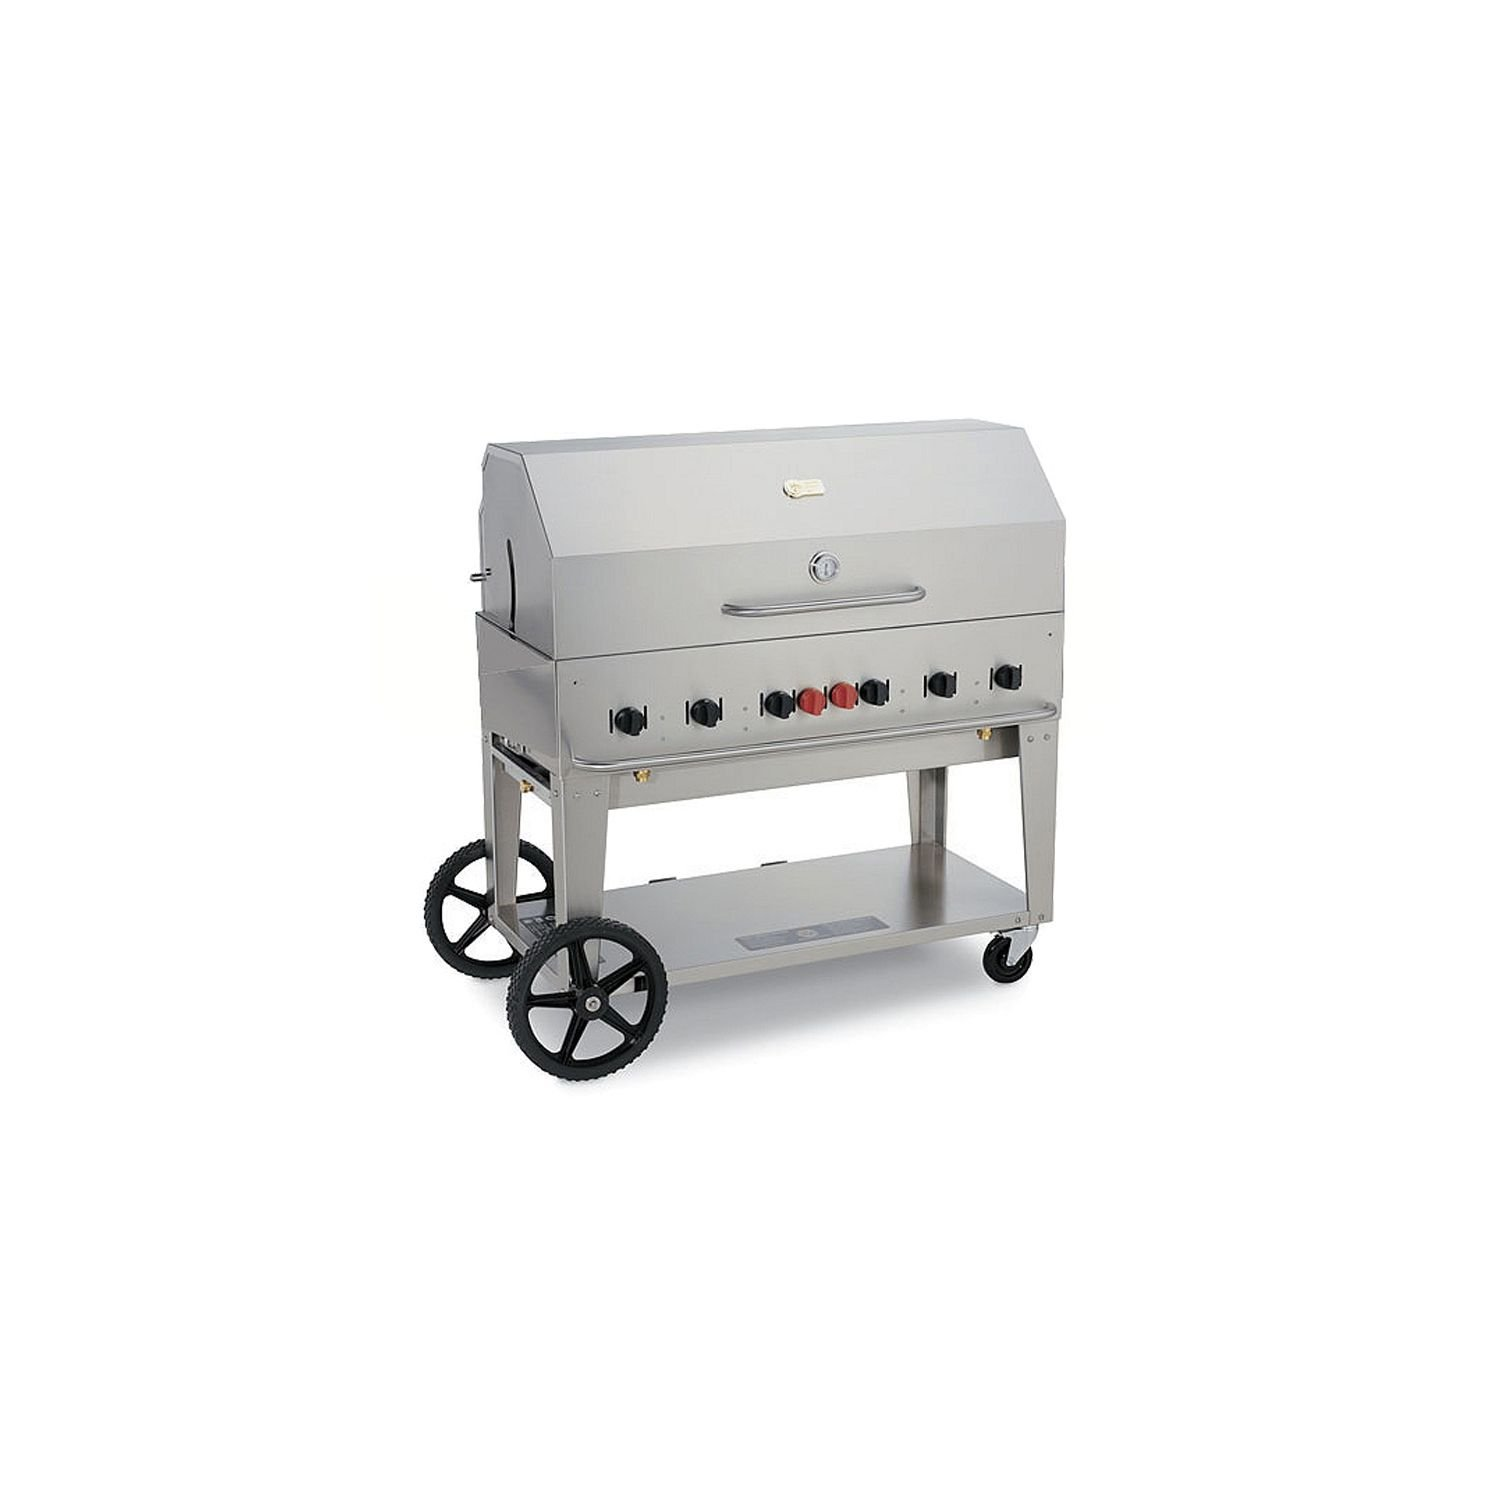 "Elite Package 48"" Stainless Steel Propane Gas Grill"